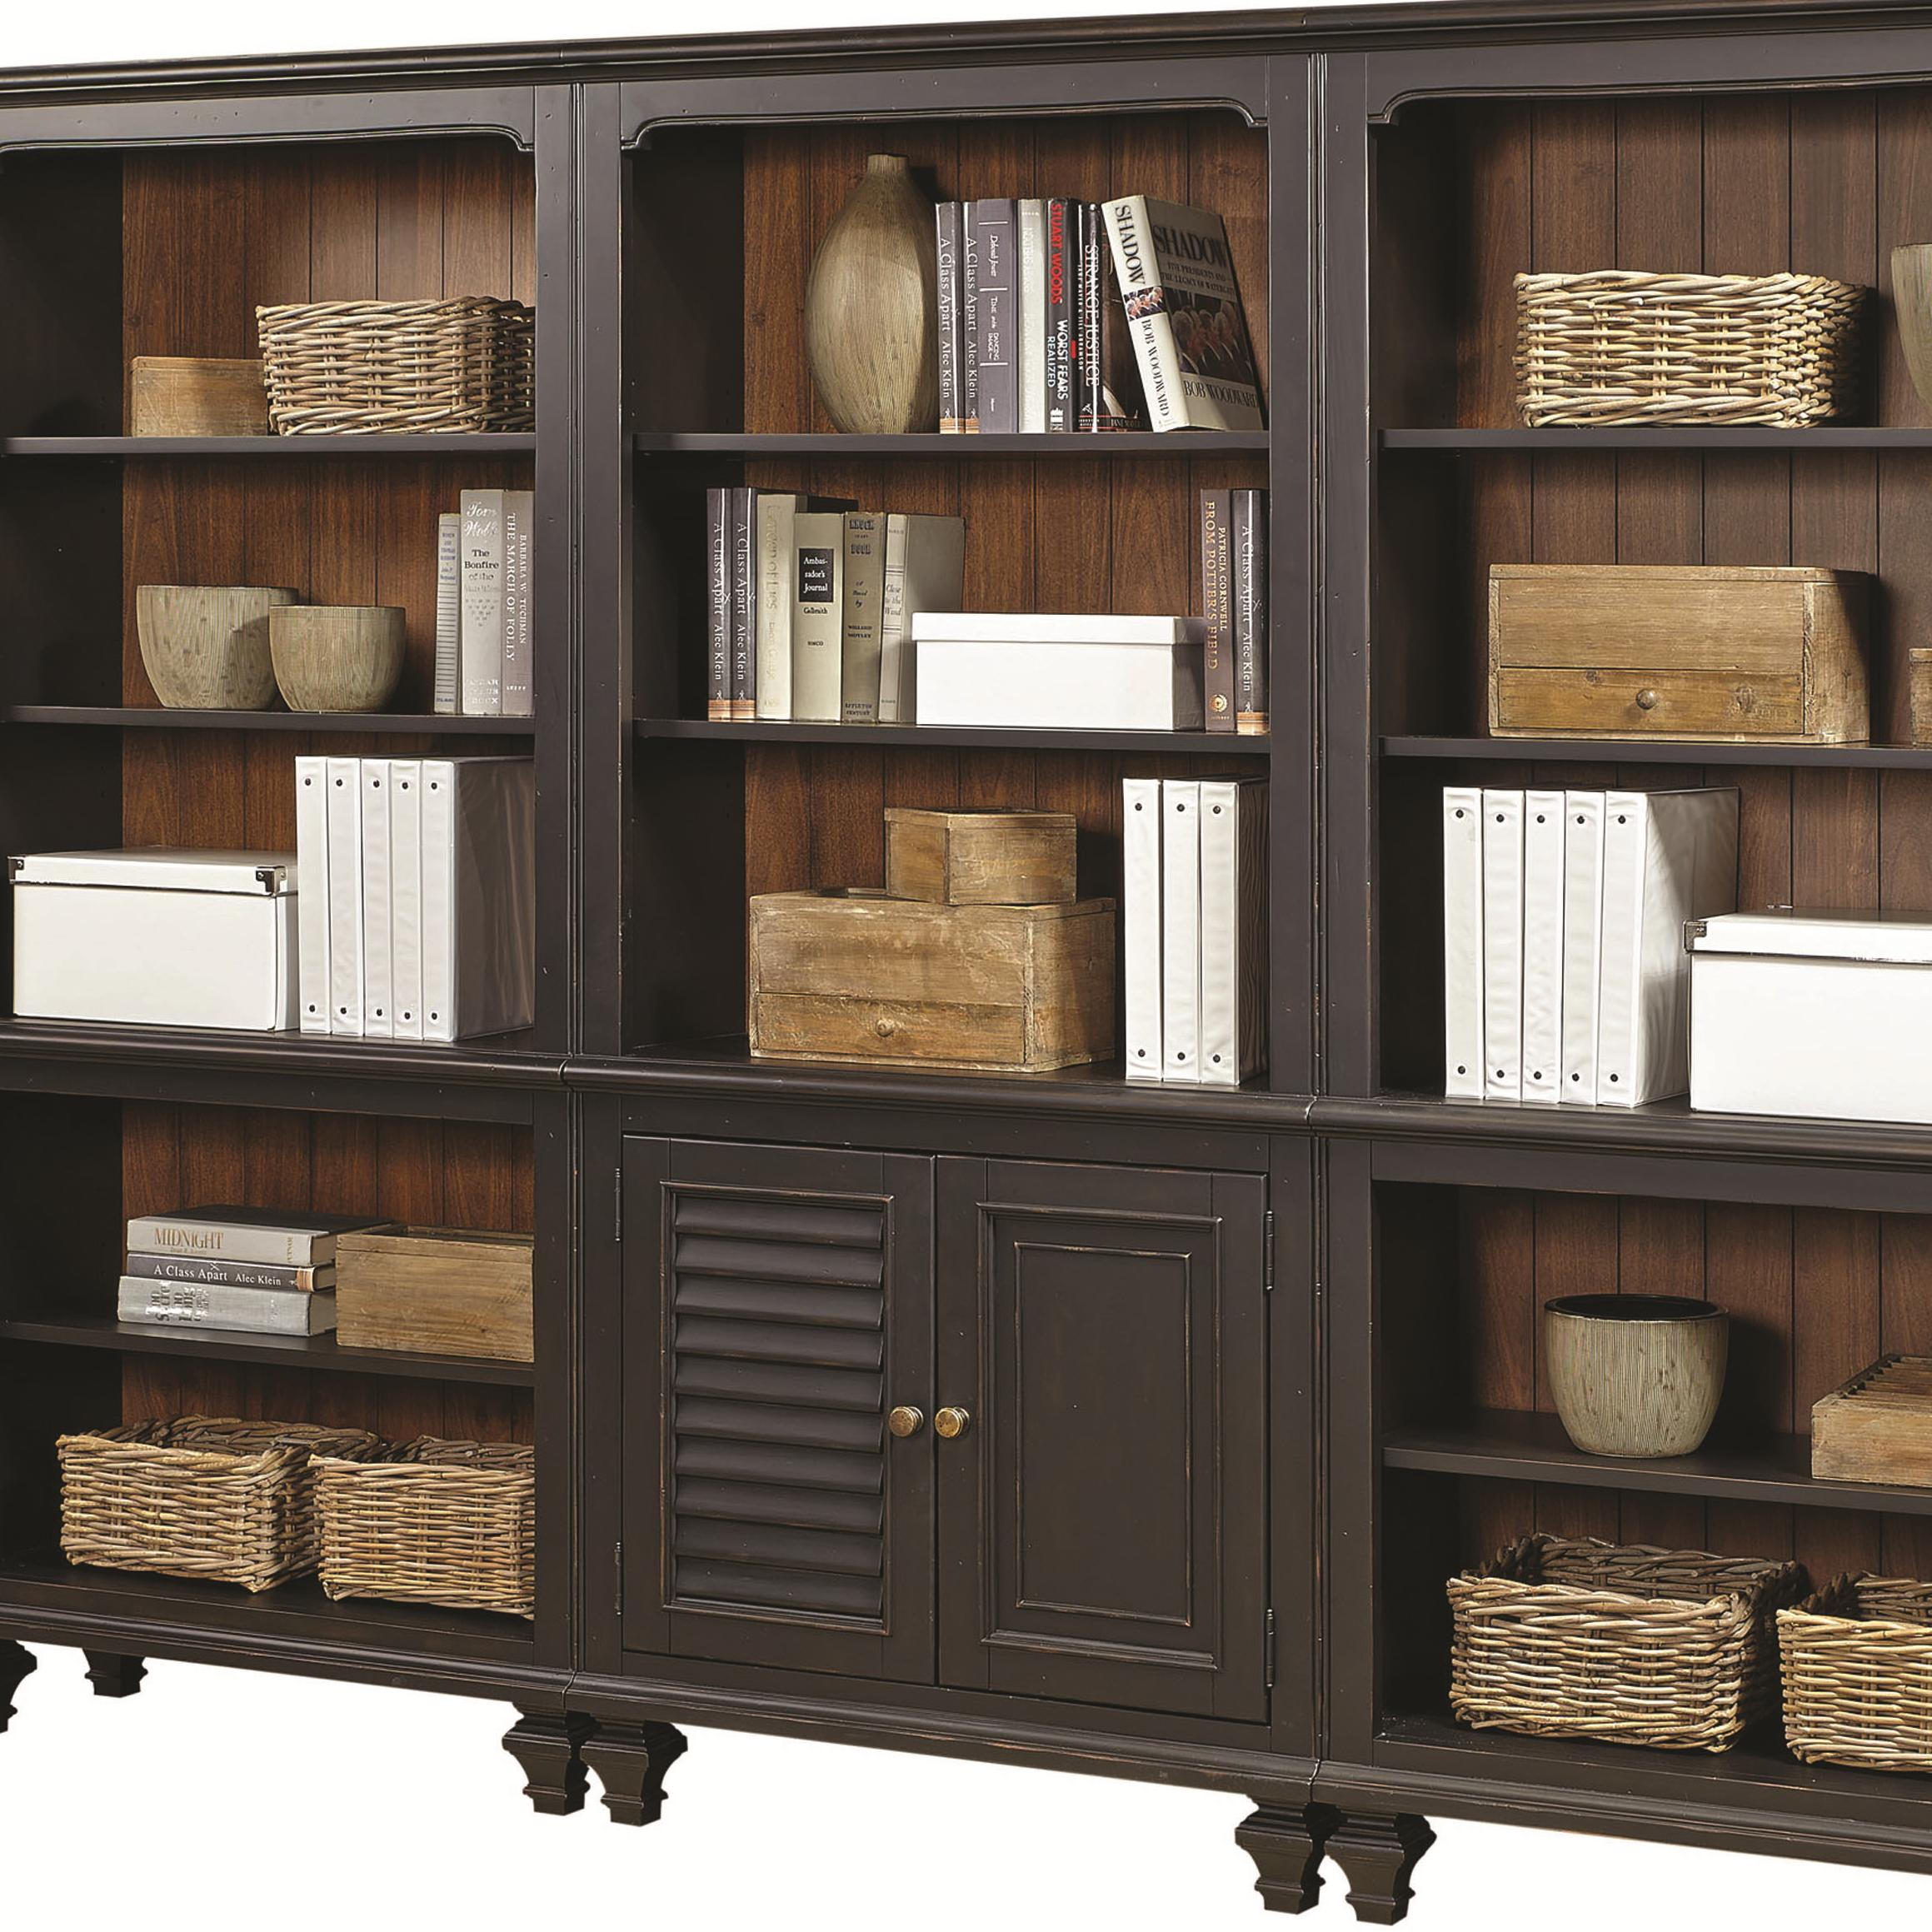 Aspenhome Ravenwood Bookcase With 2 Reversible Panel Doors And 3 Adjustable Shelves Olinde 39 S